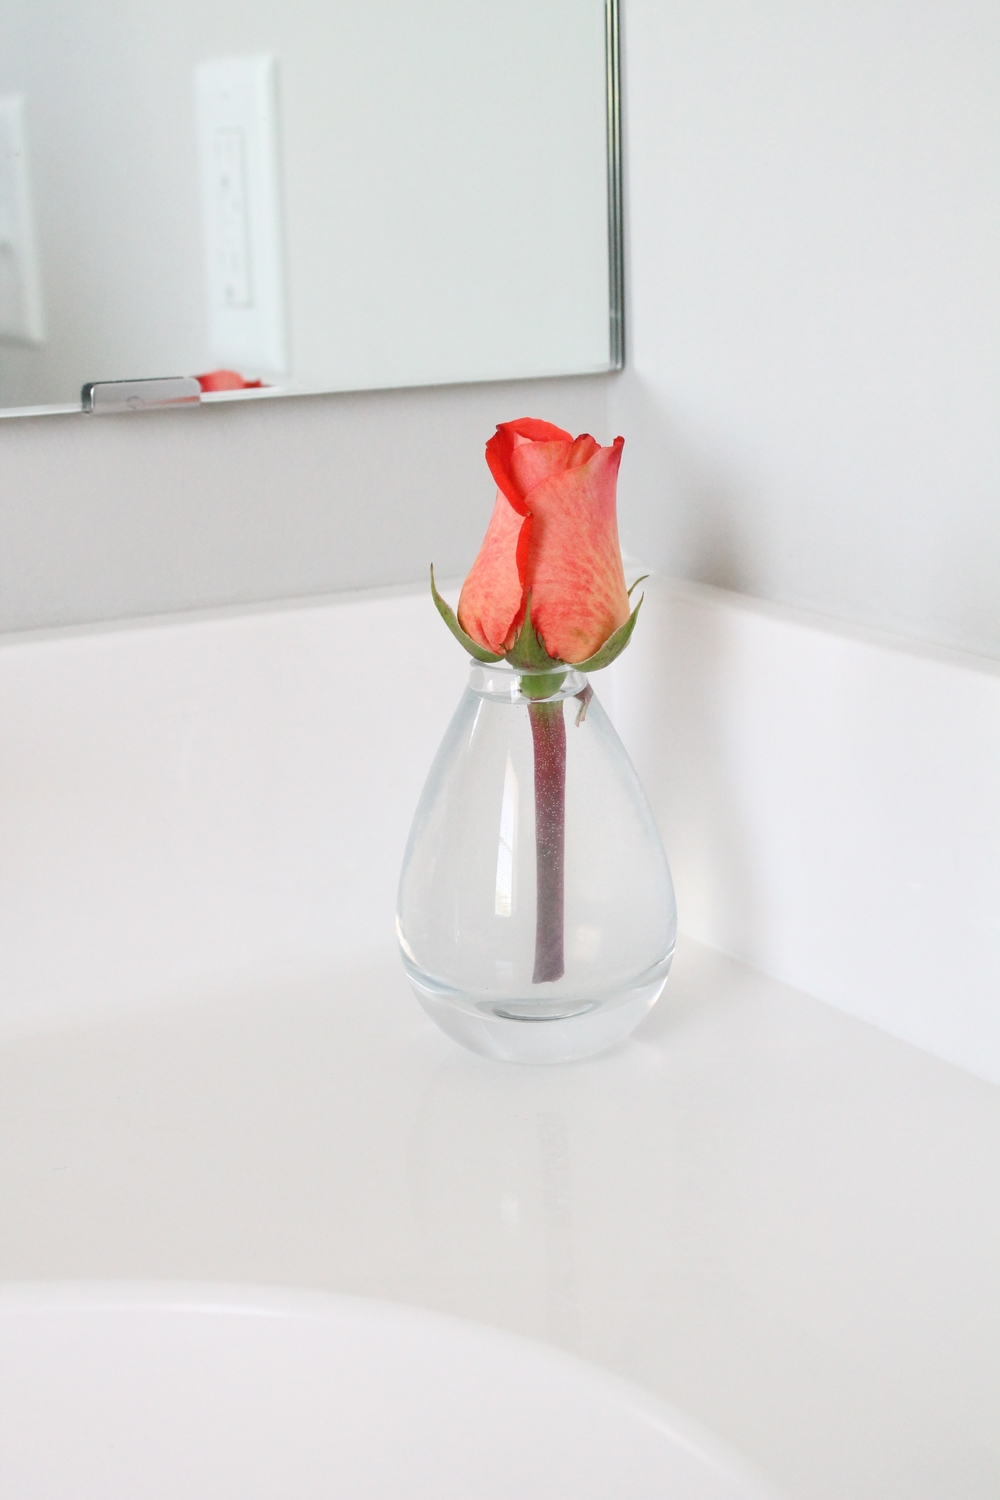 Bud Vase in the Bathroom